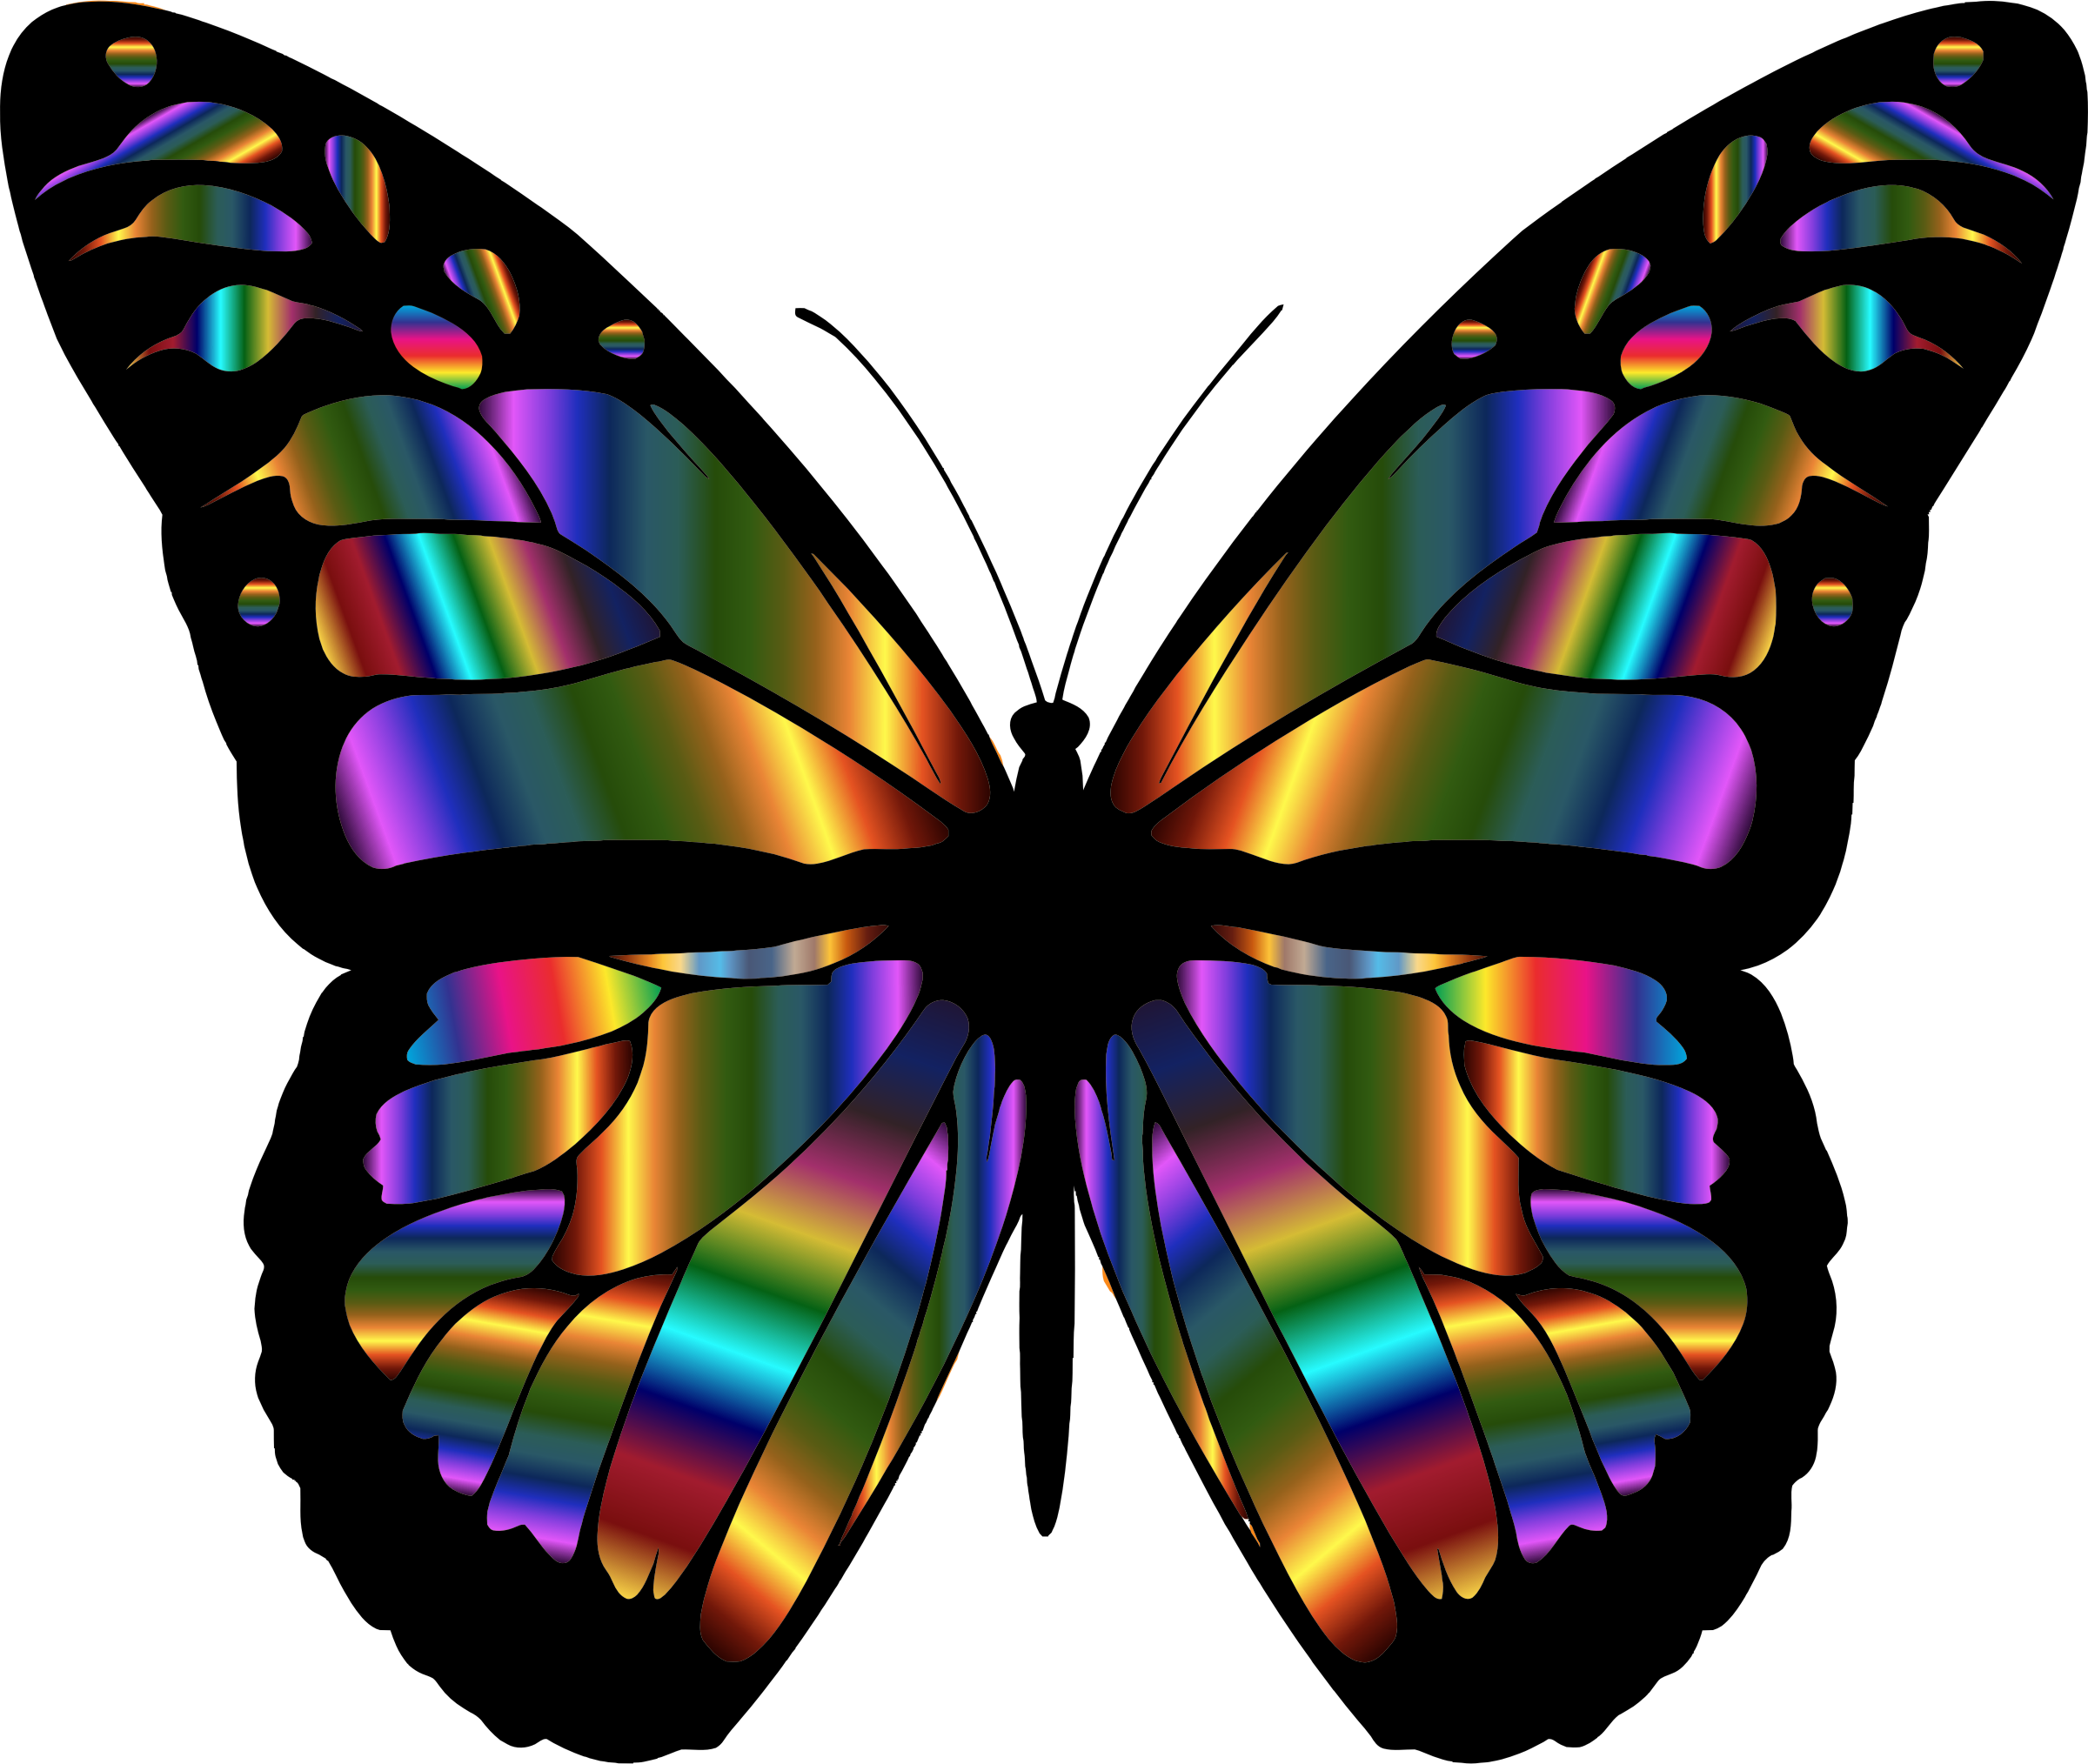 Iridescent Monarch Butterfly By Gdj A Colorful Iridescent Variation Of The Original On Openclipart Glass Butterfly Stained Glass Butterfly Butterfly Art